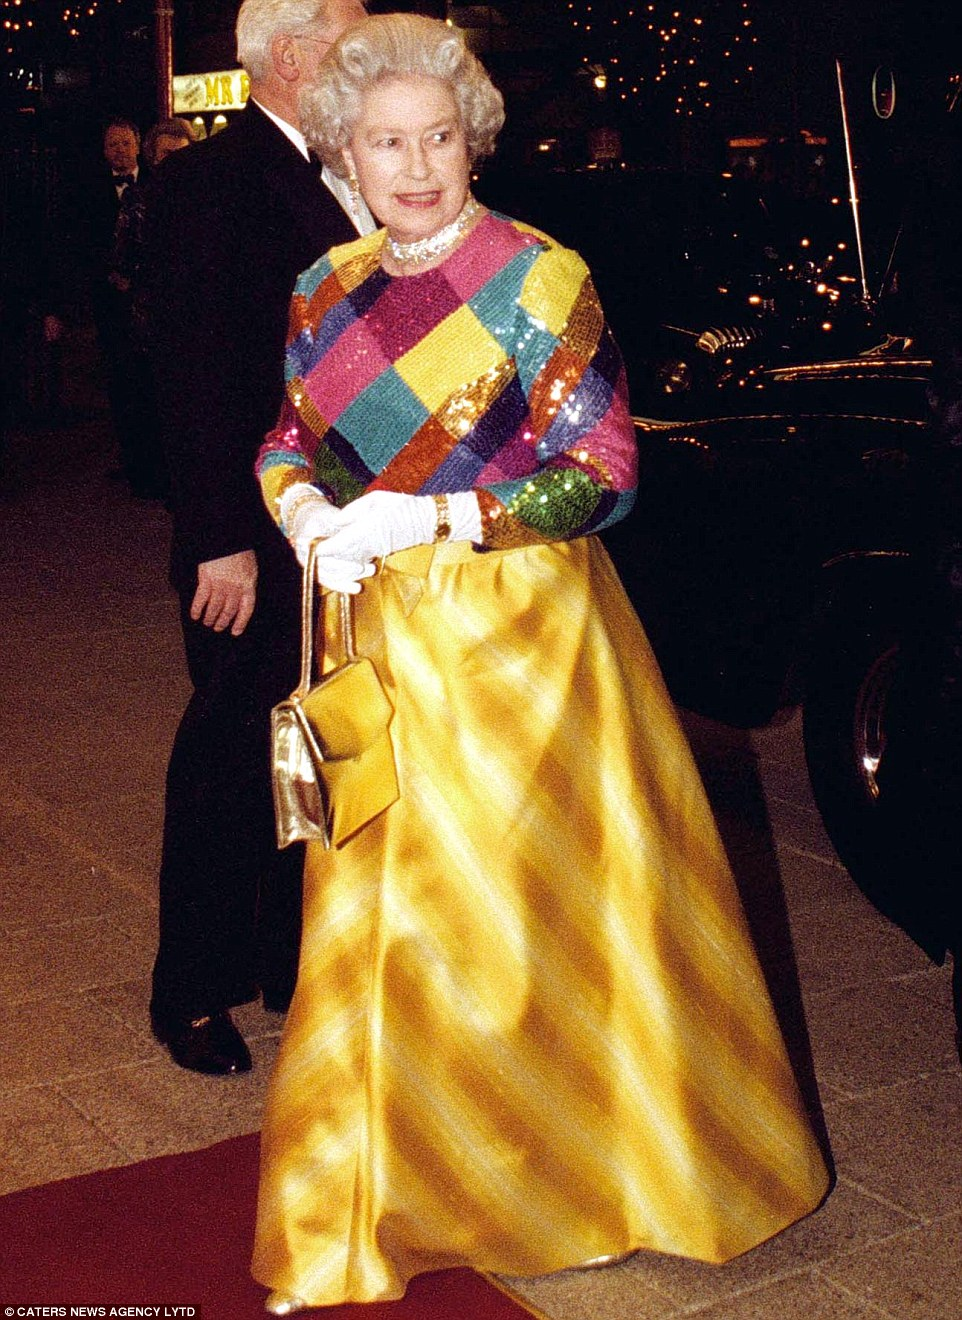 1999: The Queen raised eyebrows with a rare style disaster in a colourful dress while attending the Royal Variety Performance in 1999